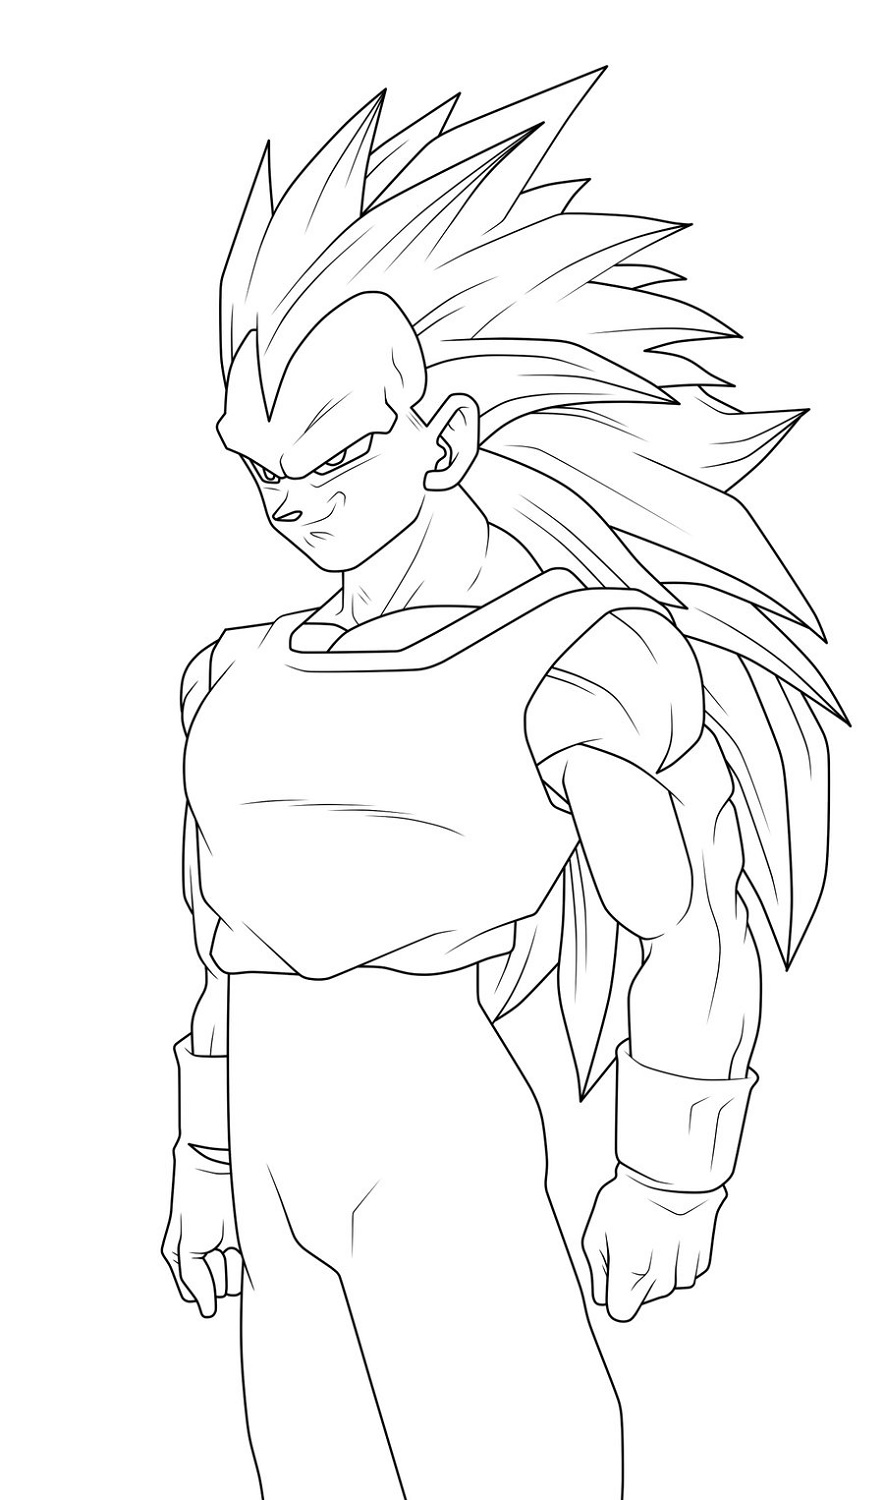 Vegeta Coloring Pages Free